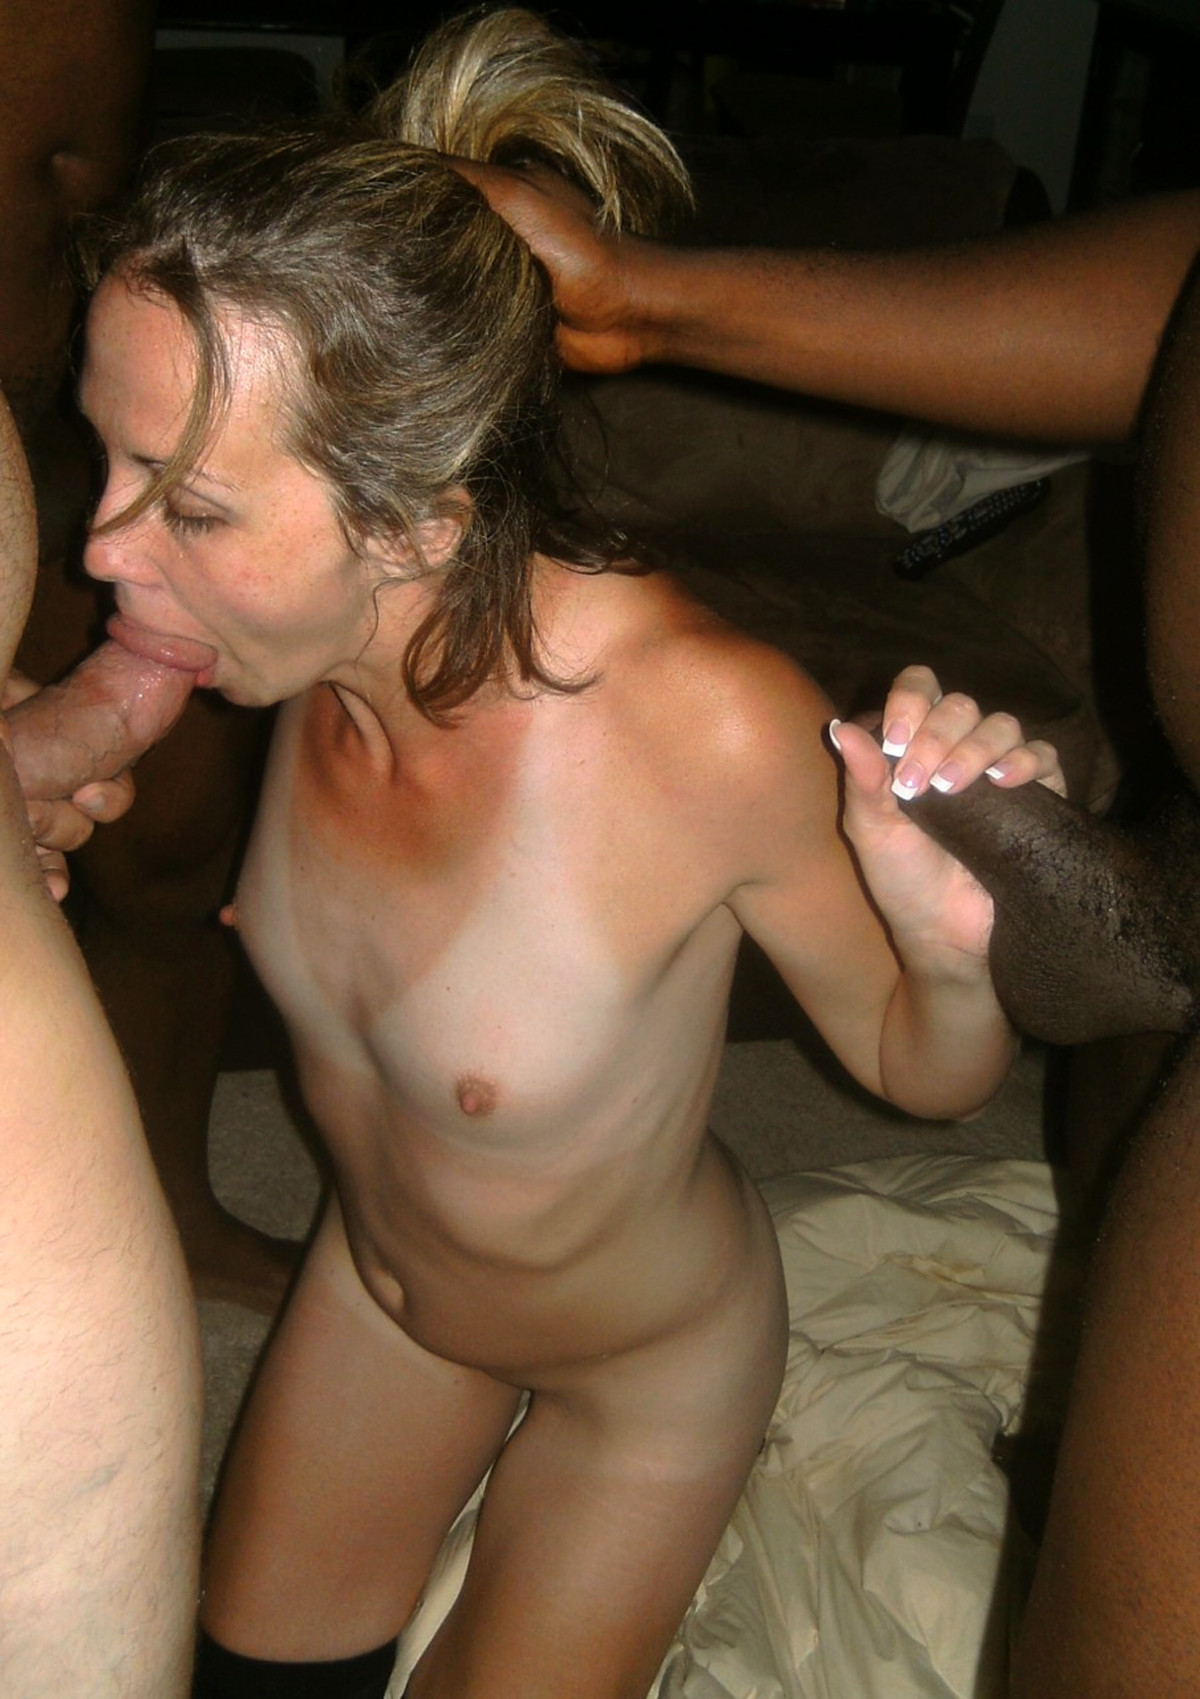 Share my sexy wife 3